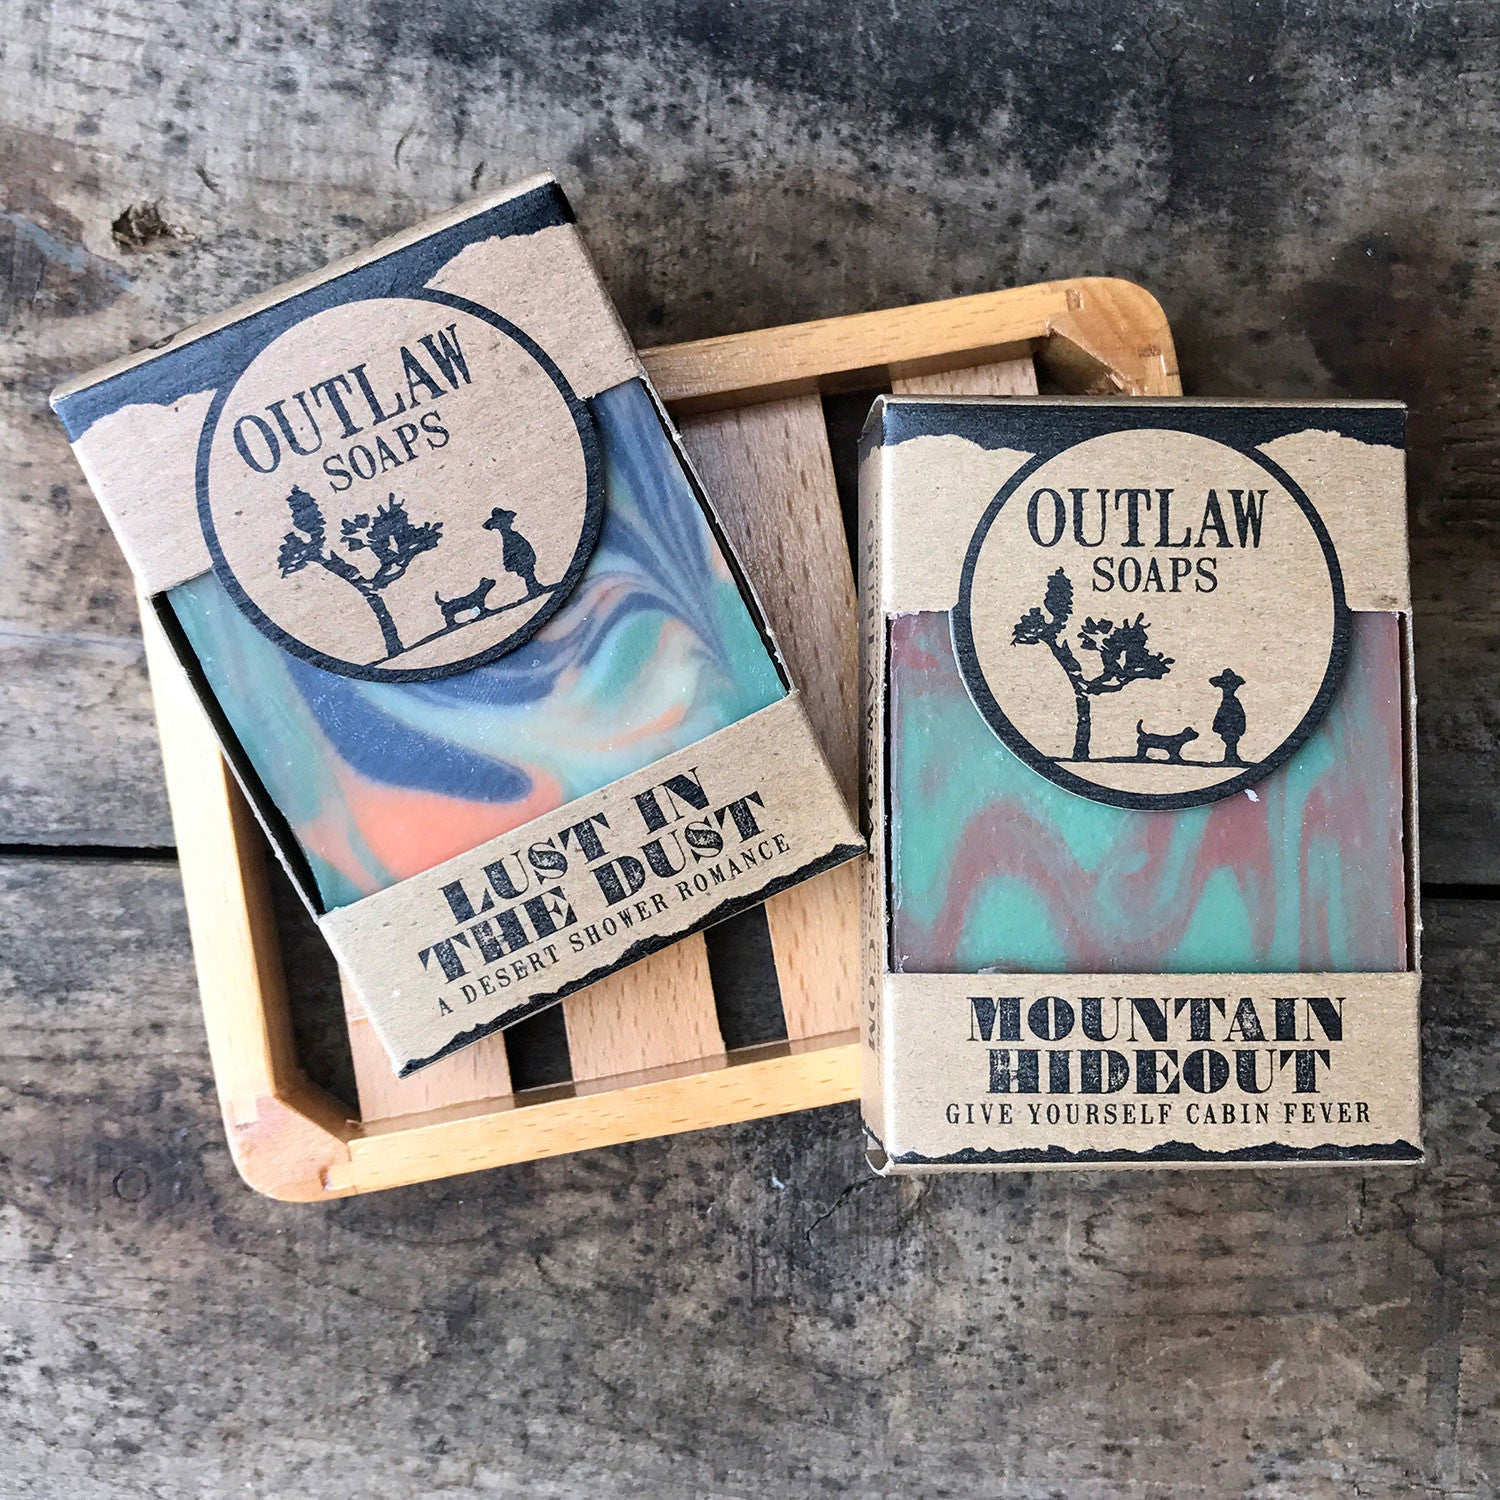 Pacific Crest Trail Adventure Soap Set - Outlaw Soaps Western Soap and Lotion for Lovers of the Wild West